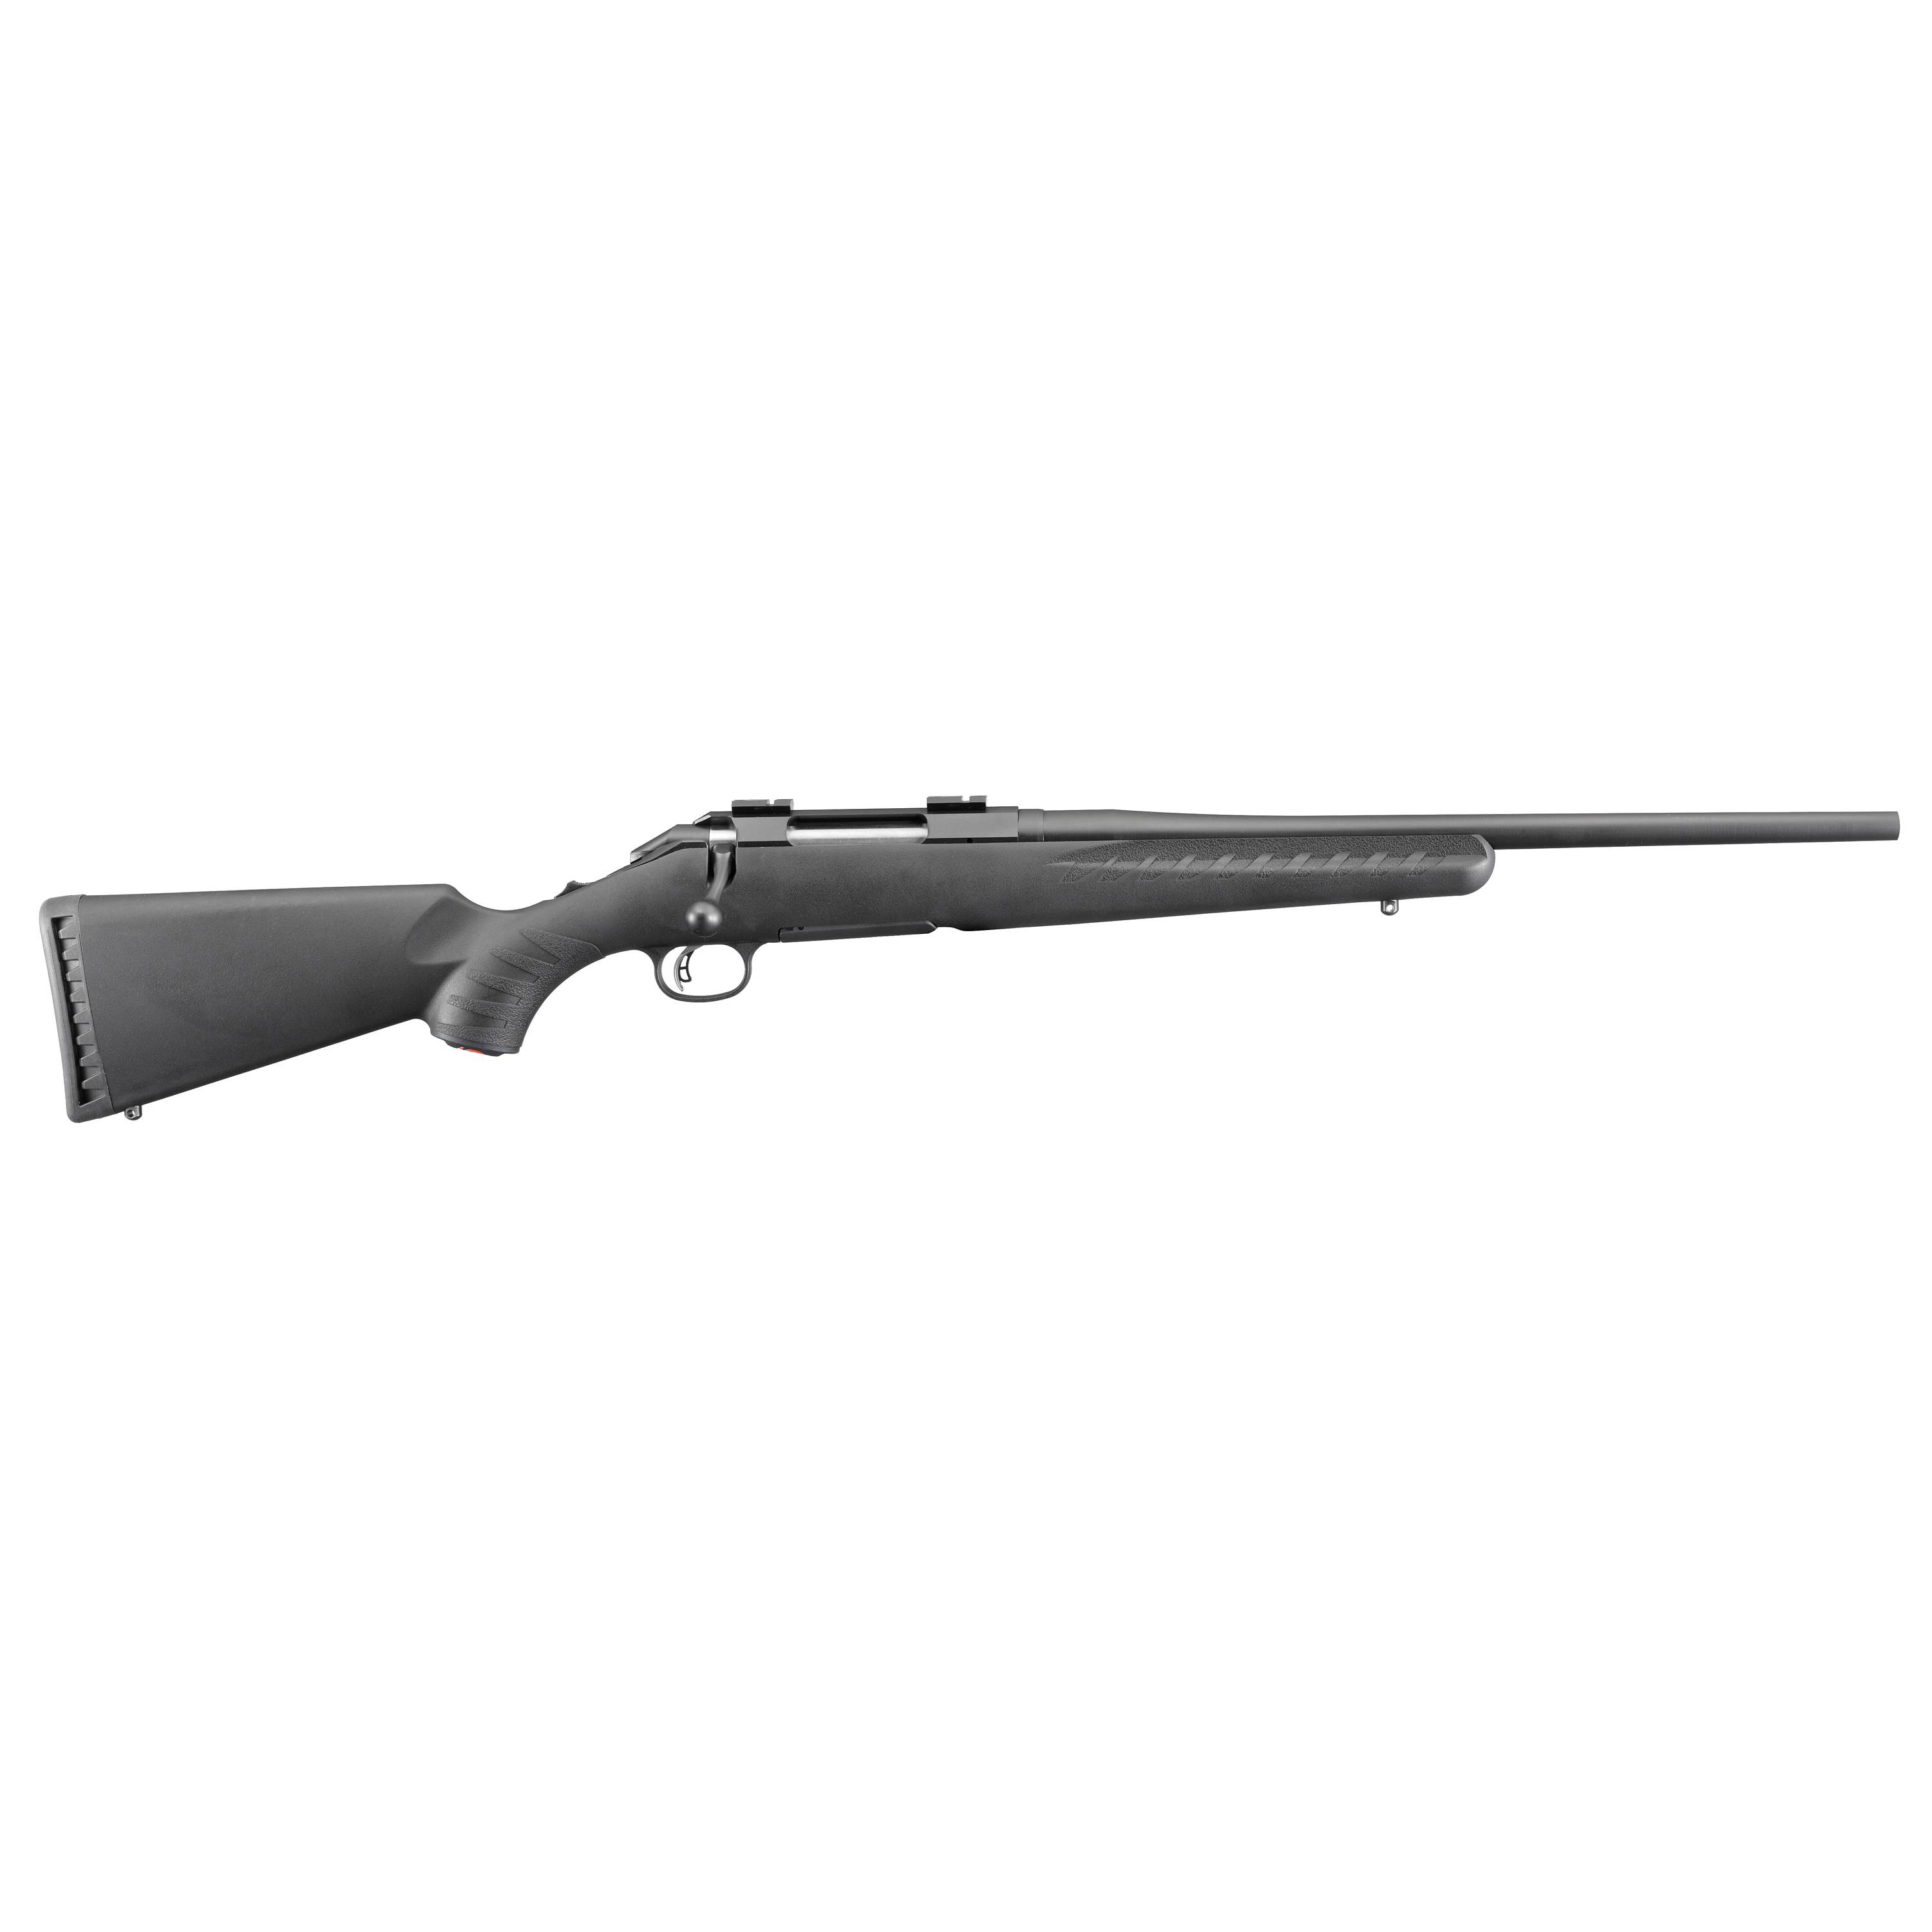 """The Ruger American features an ergonomic"""" lightweight synthetic stock designed for quick"""" easy handling and blends a classic look with modern forend contouring and grip serrations. The one-piece"""" three-lug bolt with 70 degree throw provides ample scope clearance and utilizes a full diameter bolt body and dual cocking cams for smooth"""" easy cycling from the shoulder."""